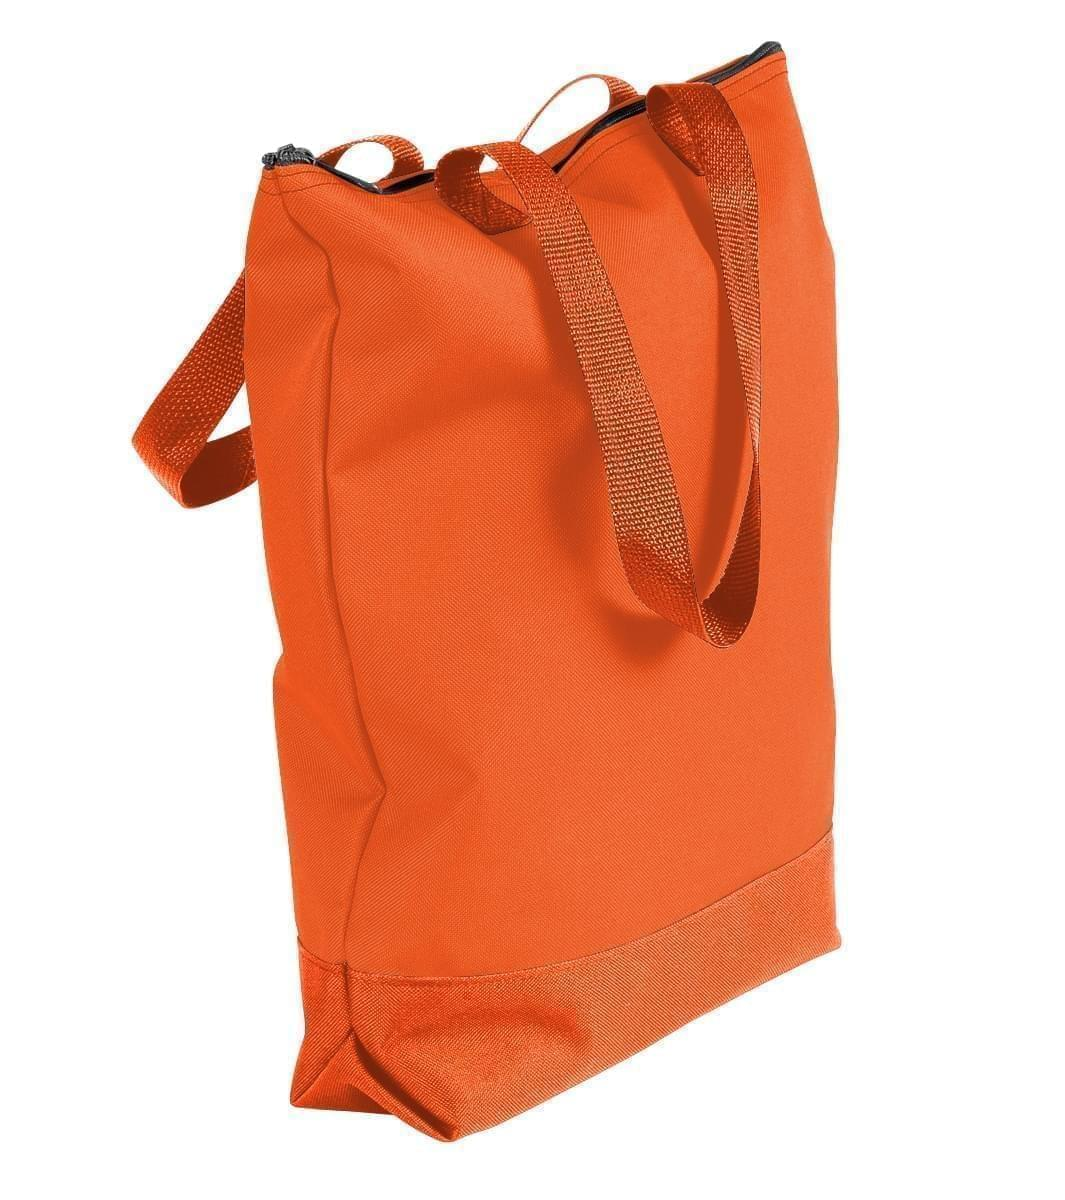 USA Made Poly Notebook Tote Bags, Orange-Orange, 1AAMX1UAX0